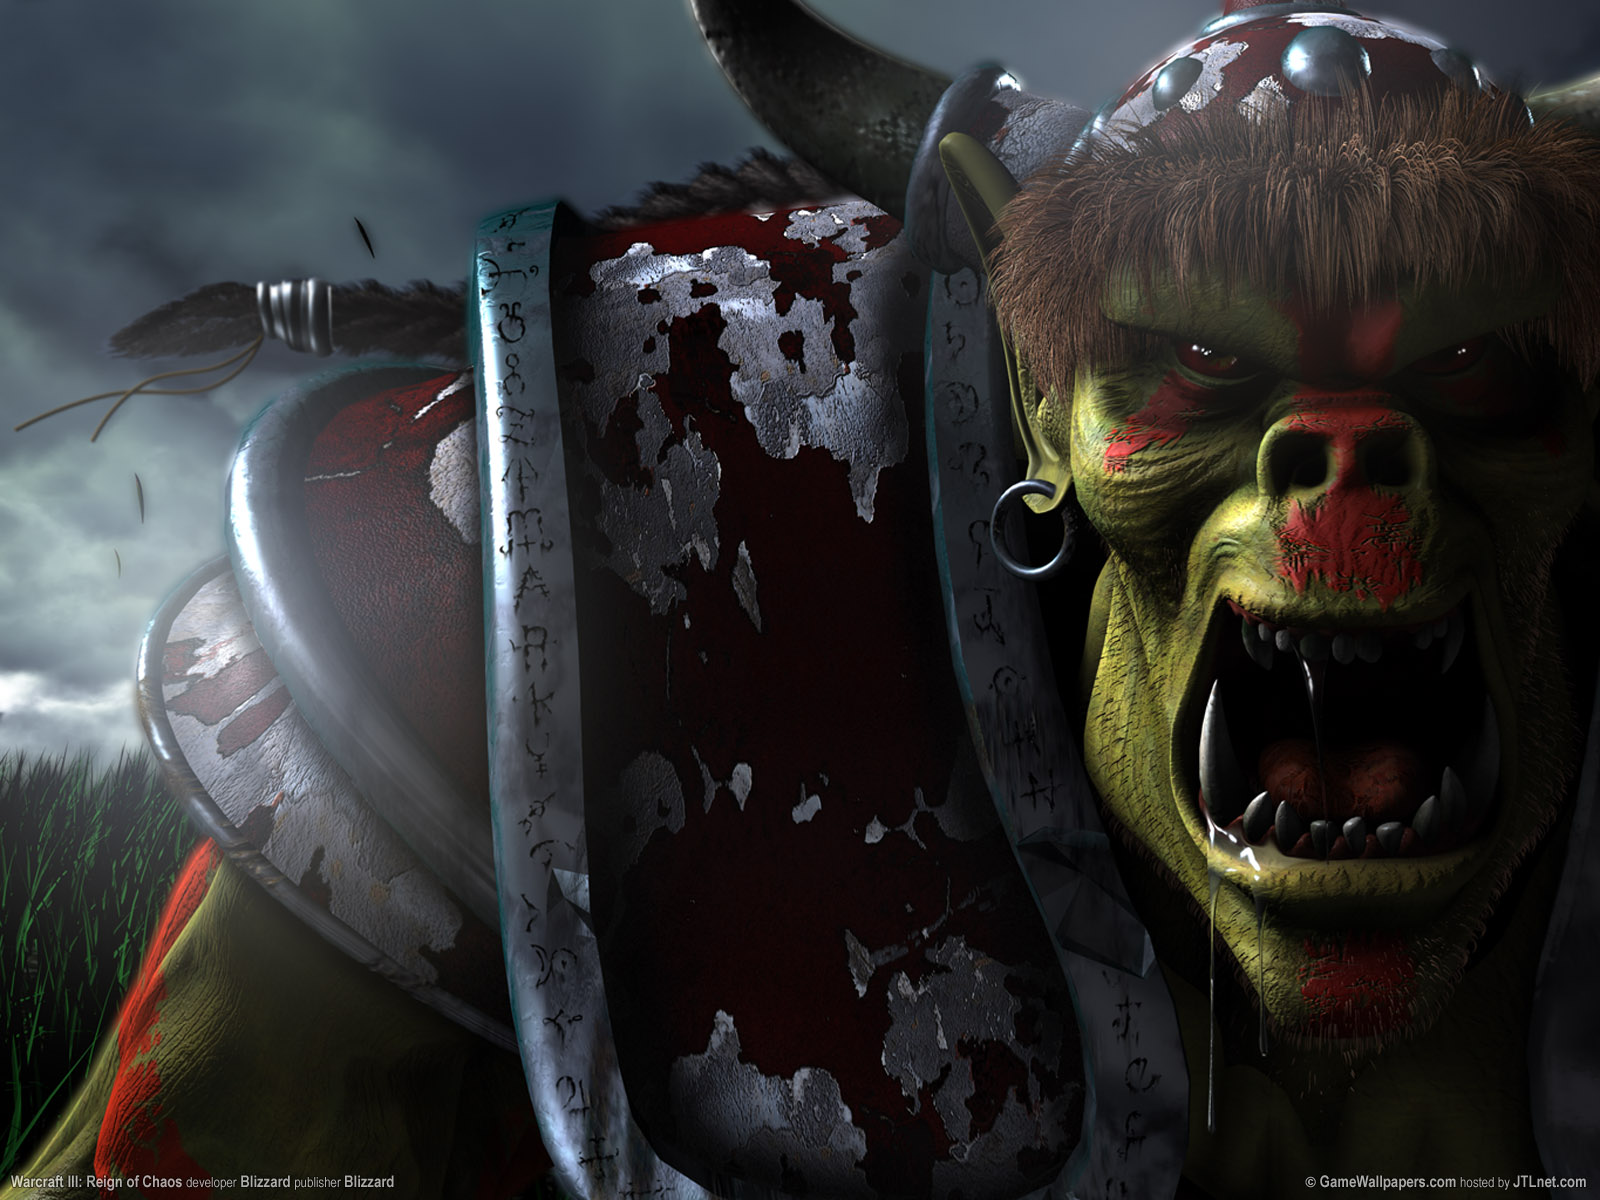 Warcraft Iii Reign Of Chaos Wallpapers Video Game Hq Warcraft